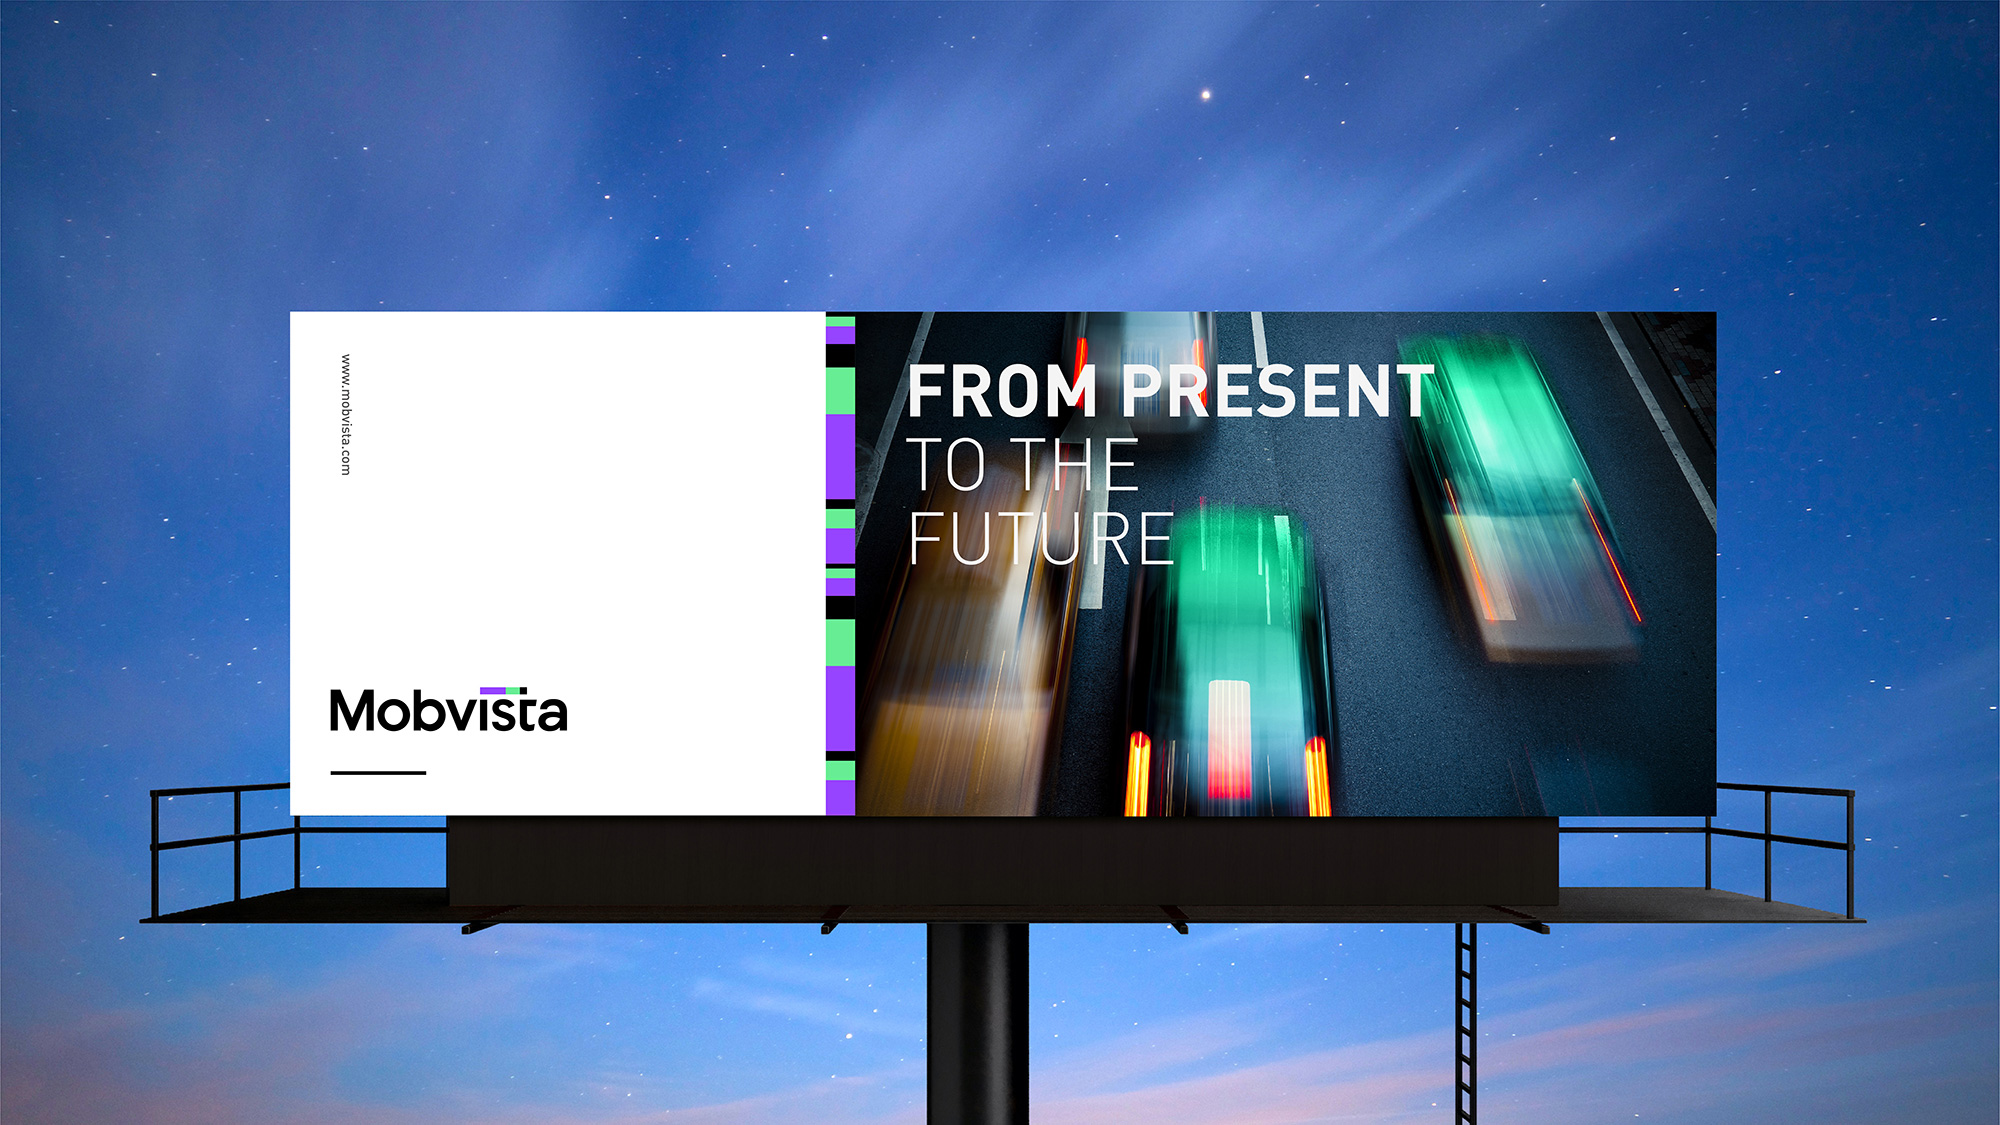 New Logo and Identity for Mobvista by Futurebrand